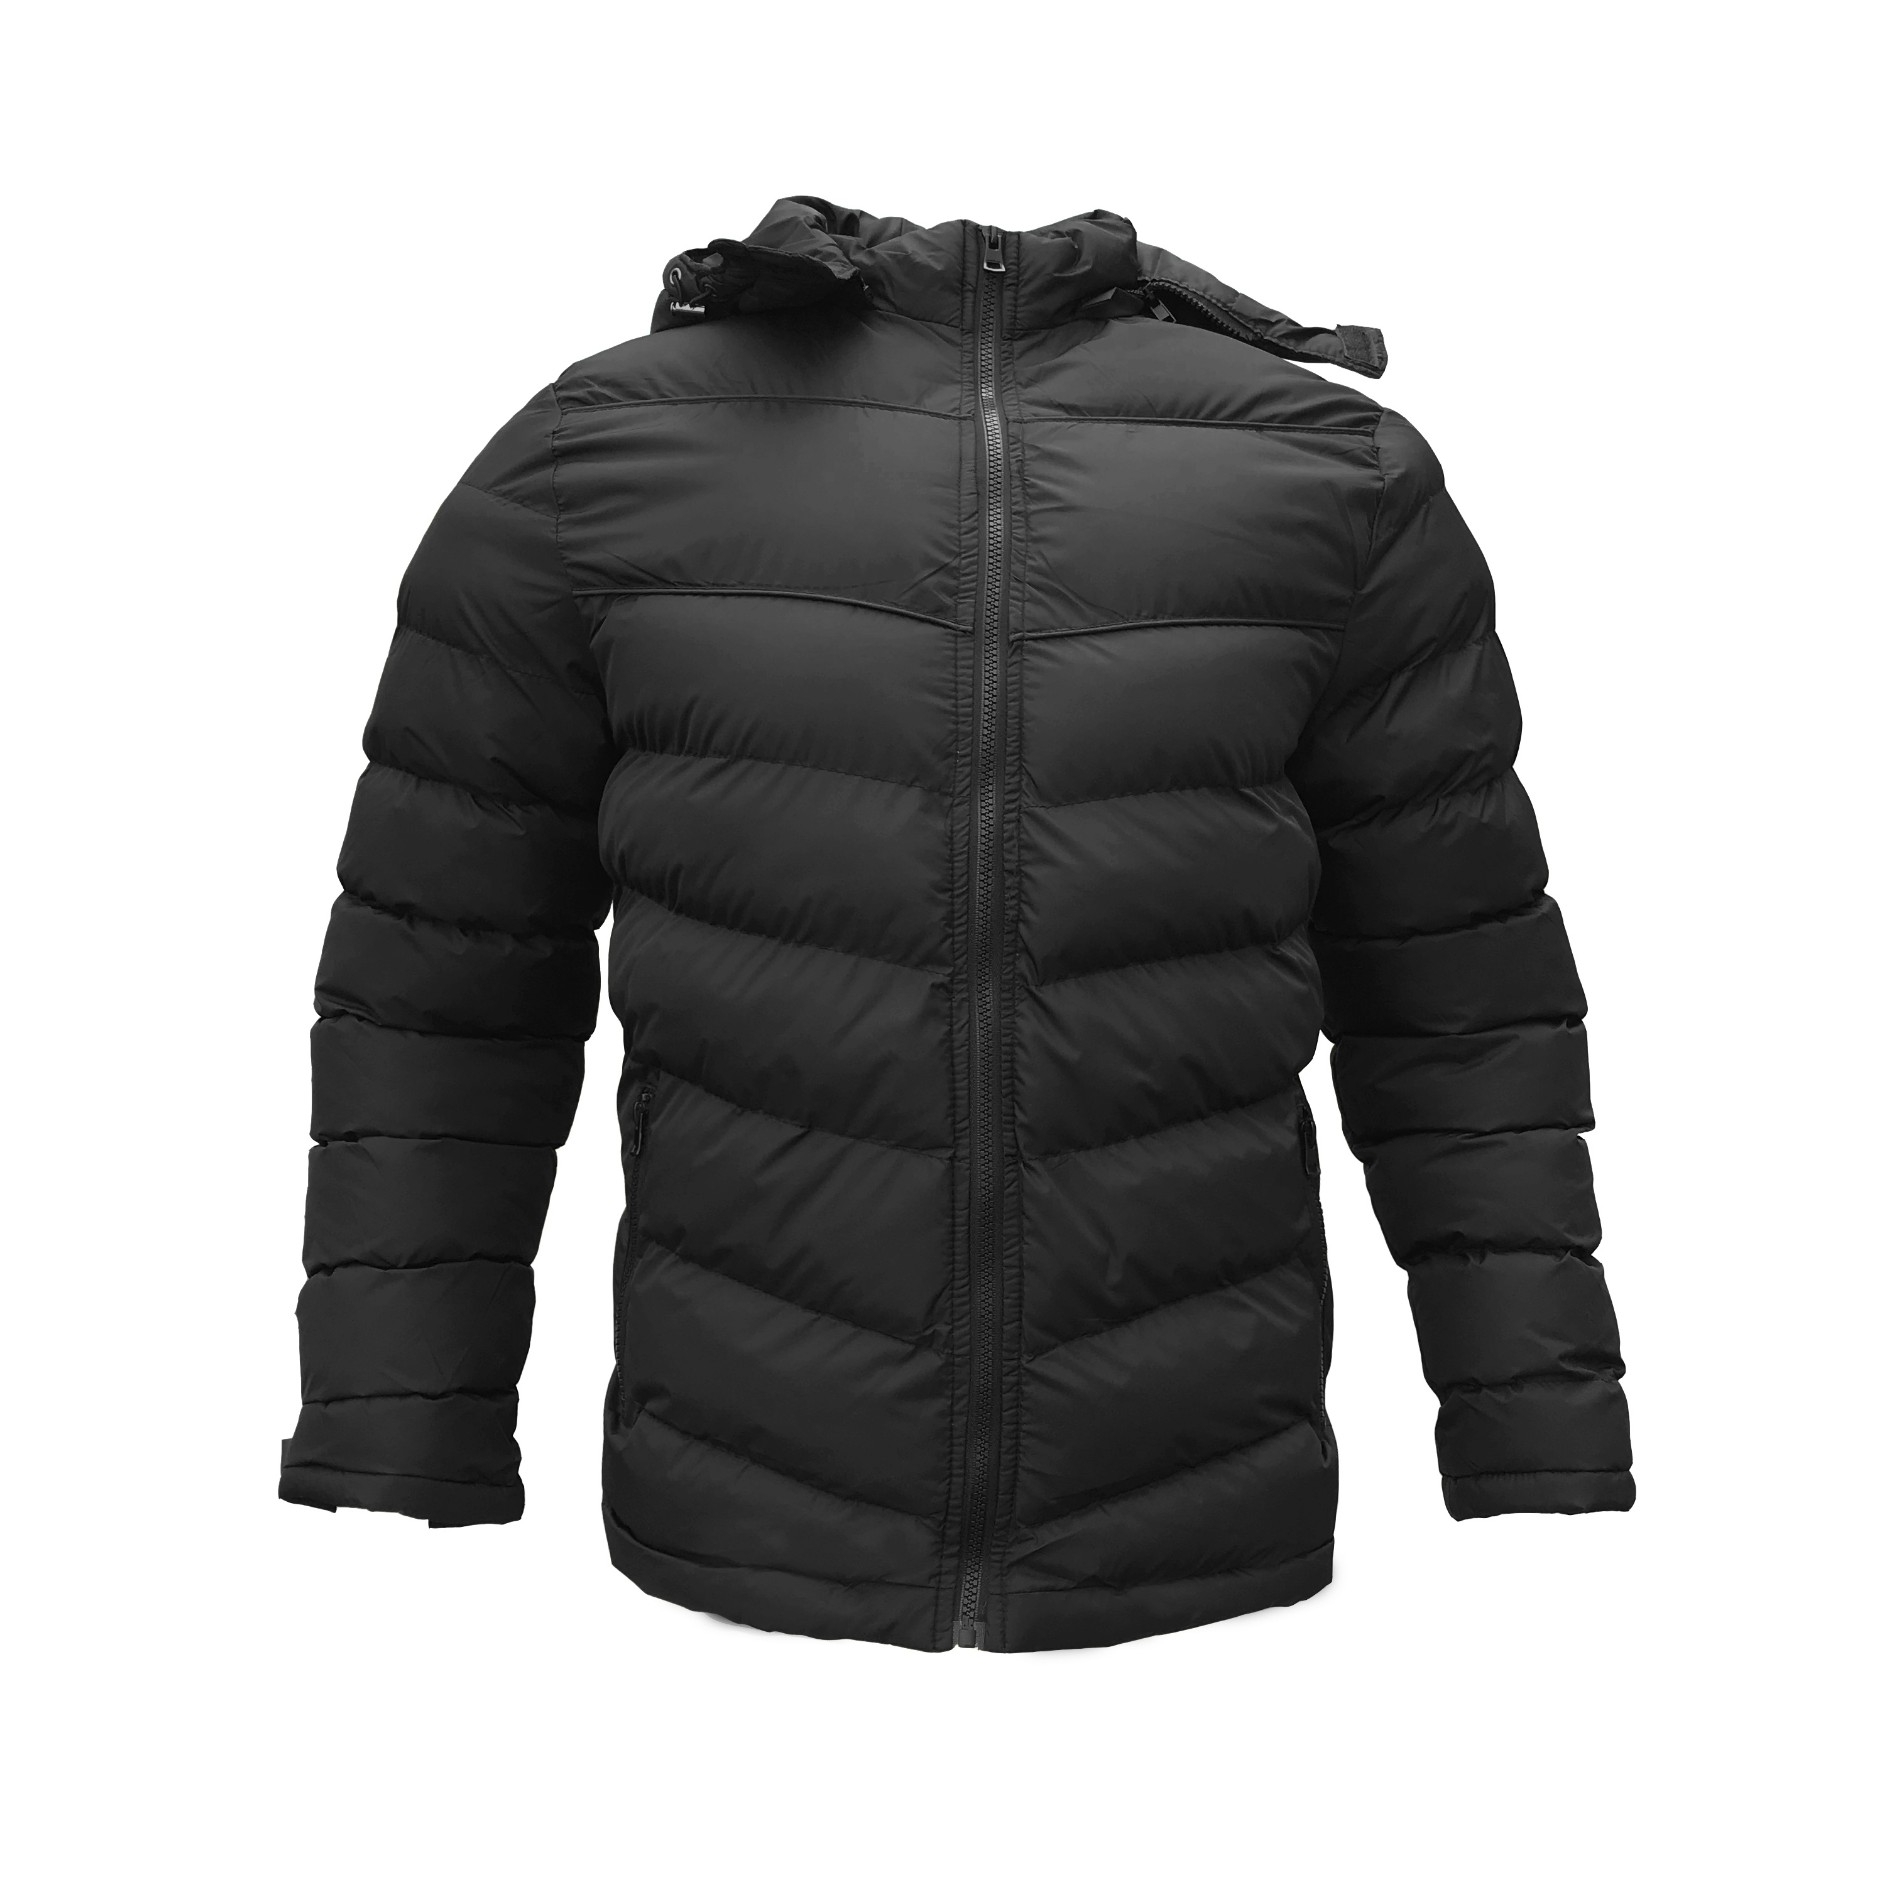 Men's Hooded Padding Coat High Quality Padded Jackets Winter Jackets For Men Manufacturers, Men's Hooded Padding Coat High Quality Padded Jackets Winter Jackets For Men Factory, Supply Men's Hooded Padding Coat High Quality Padded Jackets Winter Jackets For Men